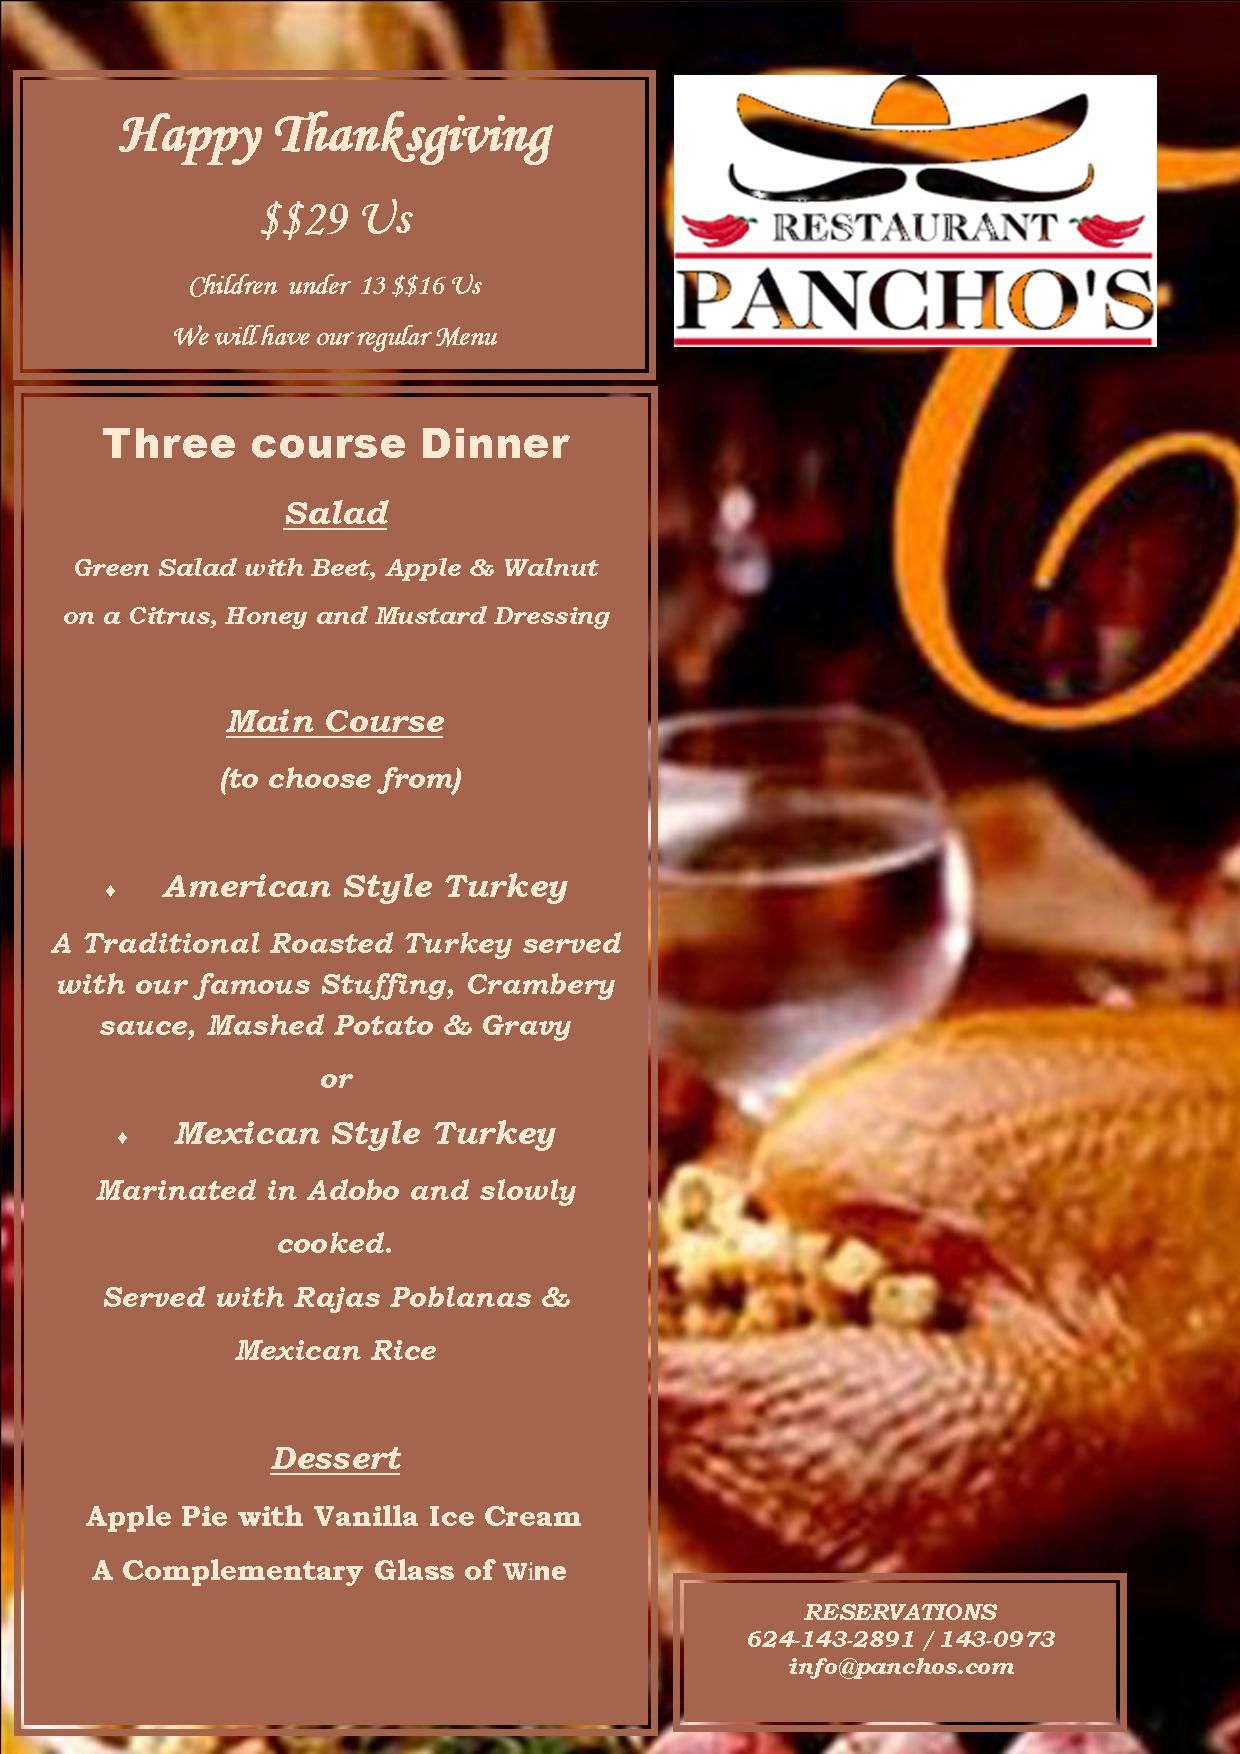 Happy Thanksgiving at Panchos Restaurant